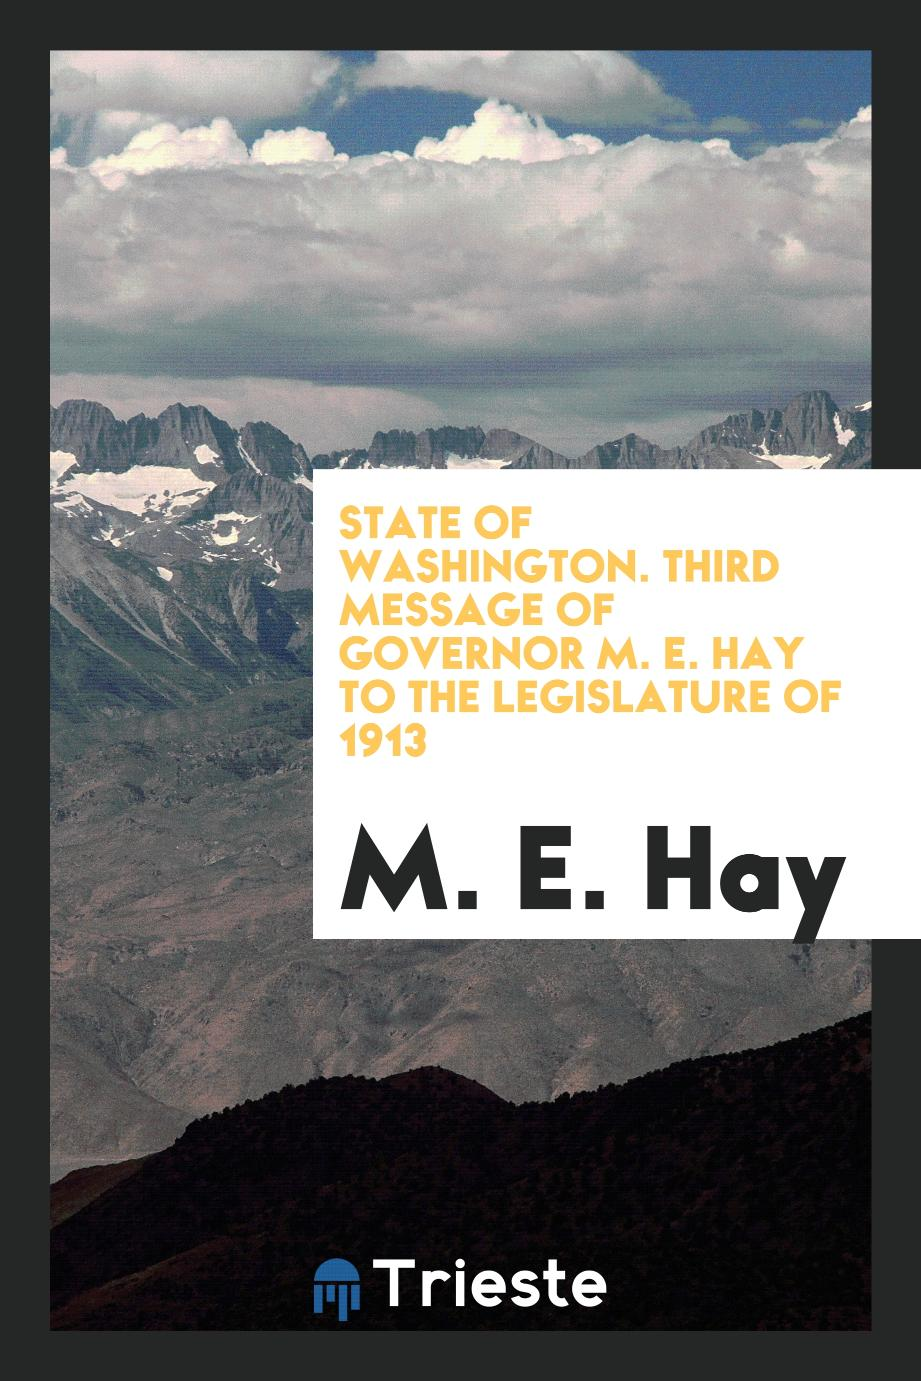 State of Washington. Third Message of Governor M. E. Hay to the legislature of 1913